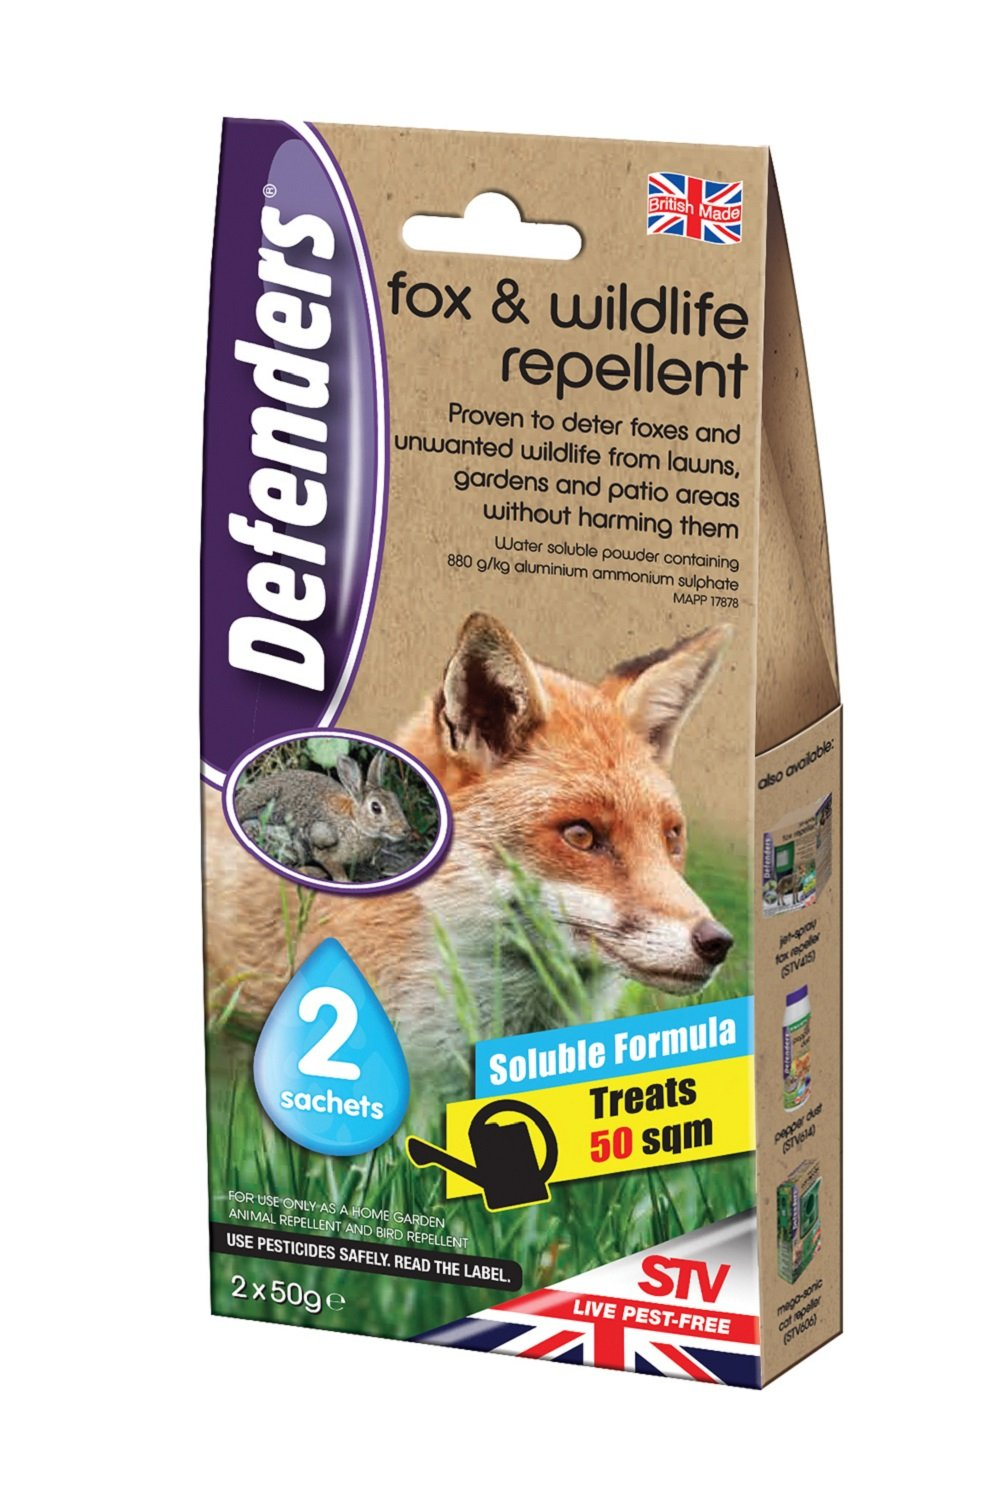 Defenders Fox and Wildlife Repellent (Humane Fox, Rabbit and Bird  Deterrent, Treats up to 50 sq m, Use on Lawns, Gardens, Flowerbeds and  Patio Areas)